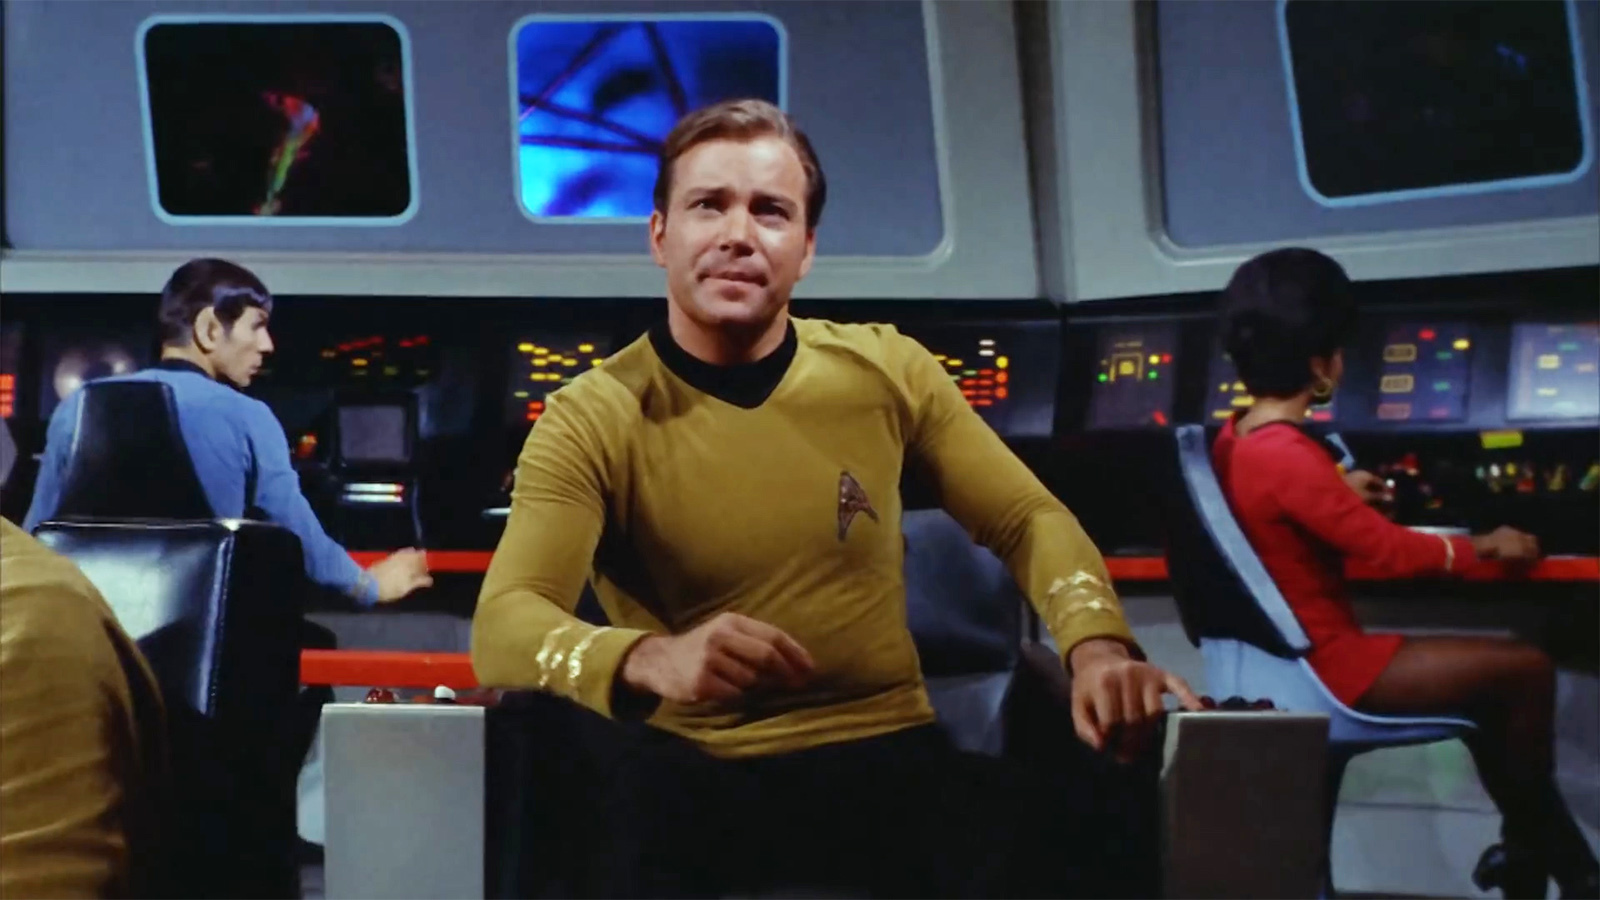 William Shatner Vs. The Crew Of The Enterprise: A History Of Star Trek Feuds